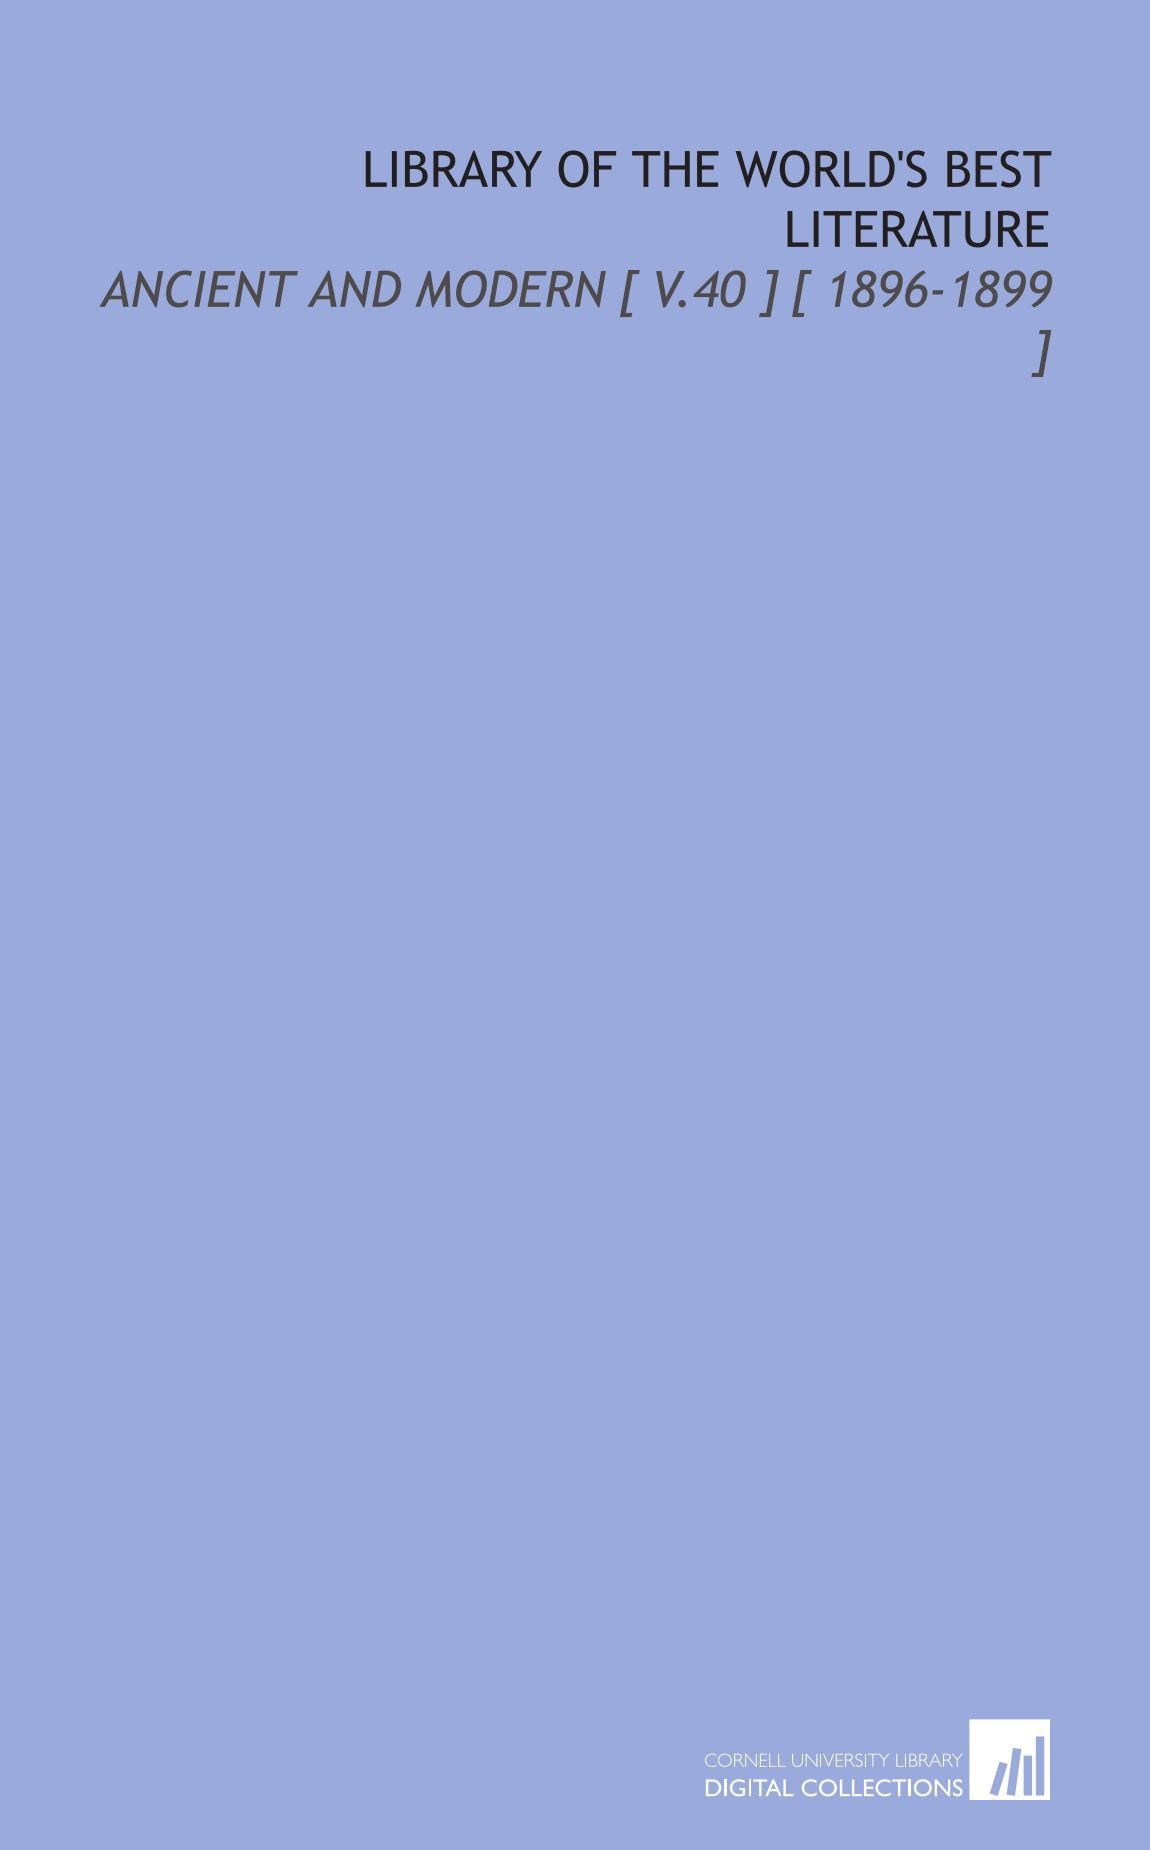 Download Library of the World's Best Literature: Ancient and Modern [ V.40 ] [ 1896-1899 ] pdf